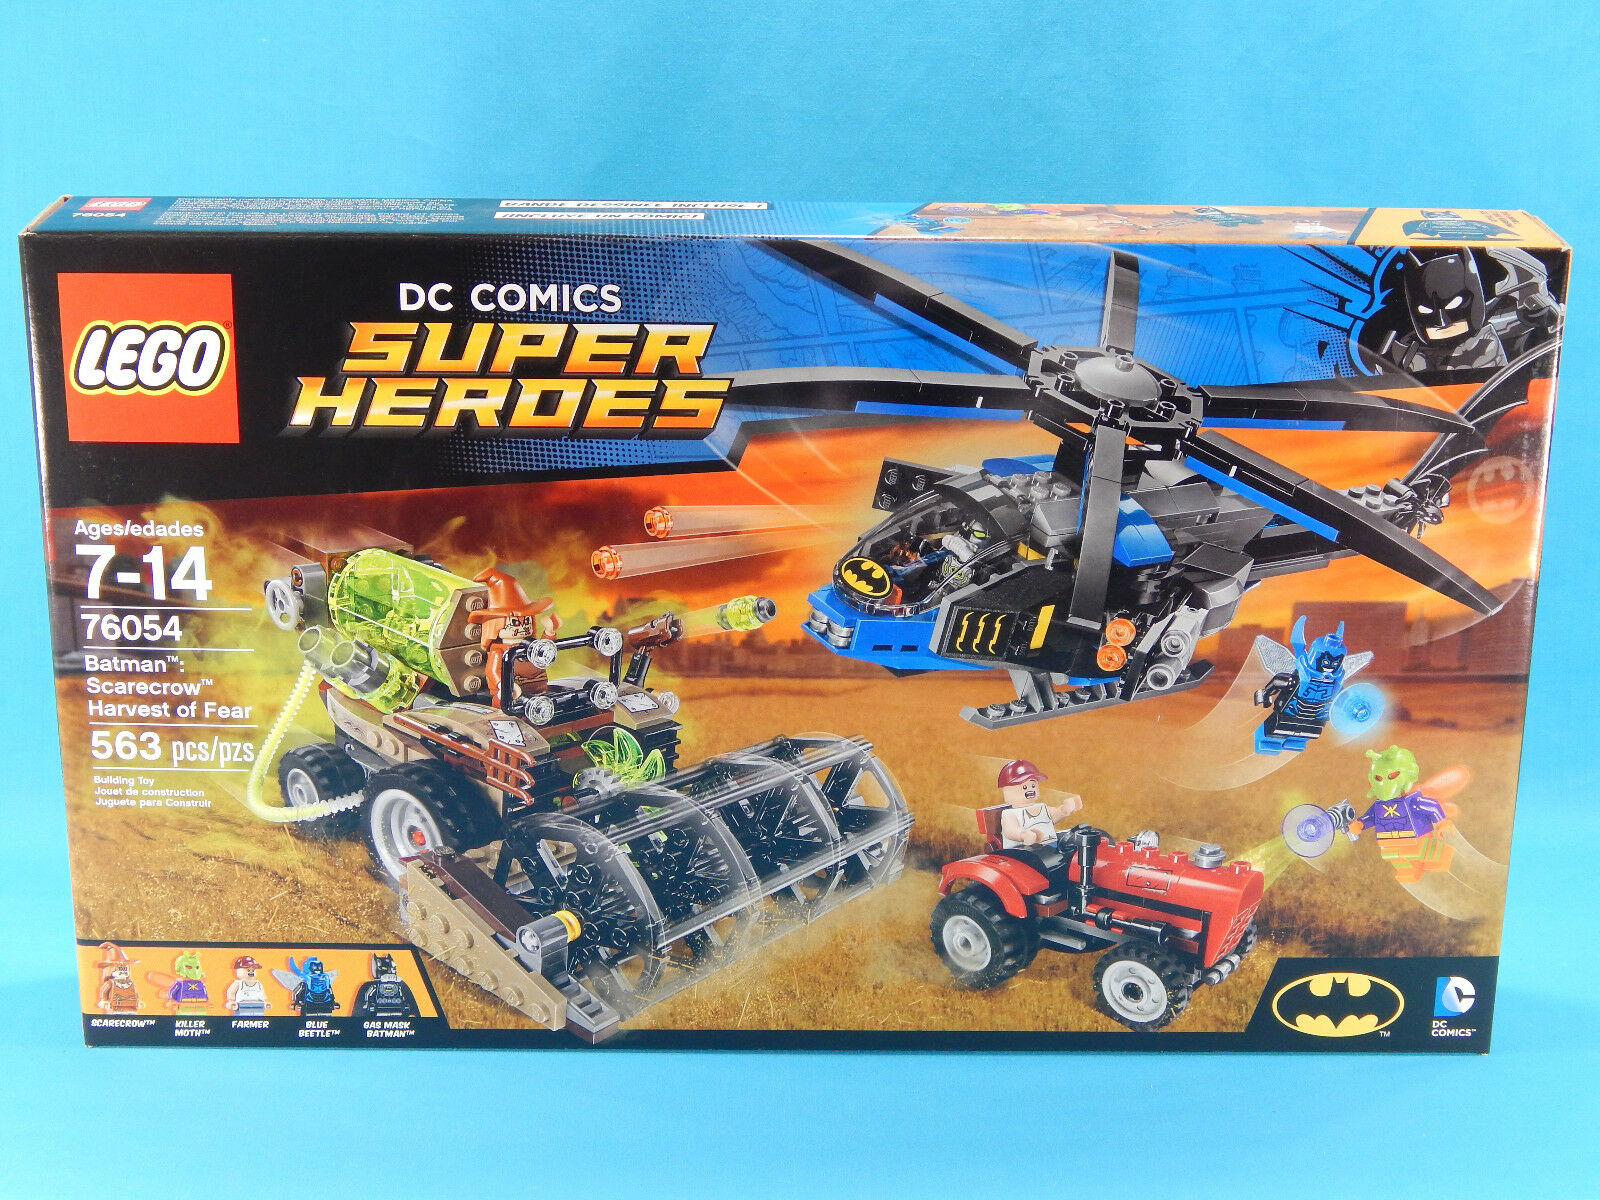 Lego Super Heroes 76054 Batman: Scarecrow Harvest of Fear 563pcs Nuovo Sealed 2016